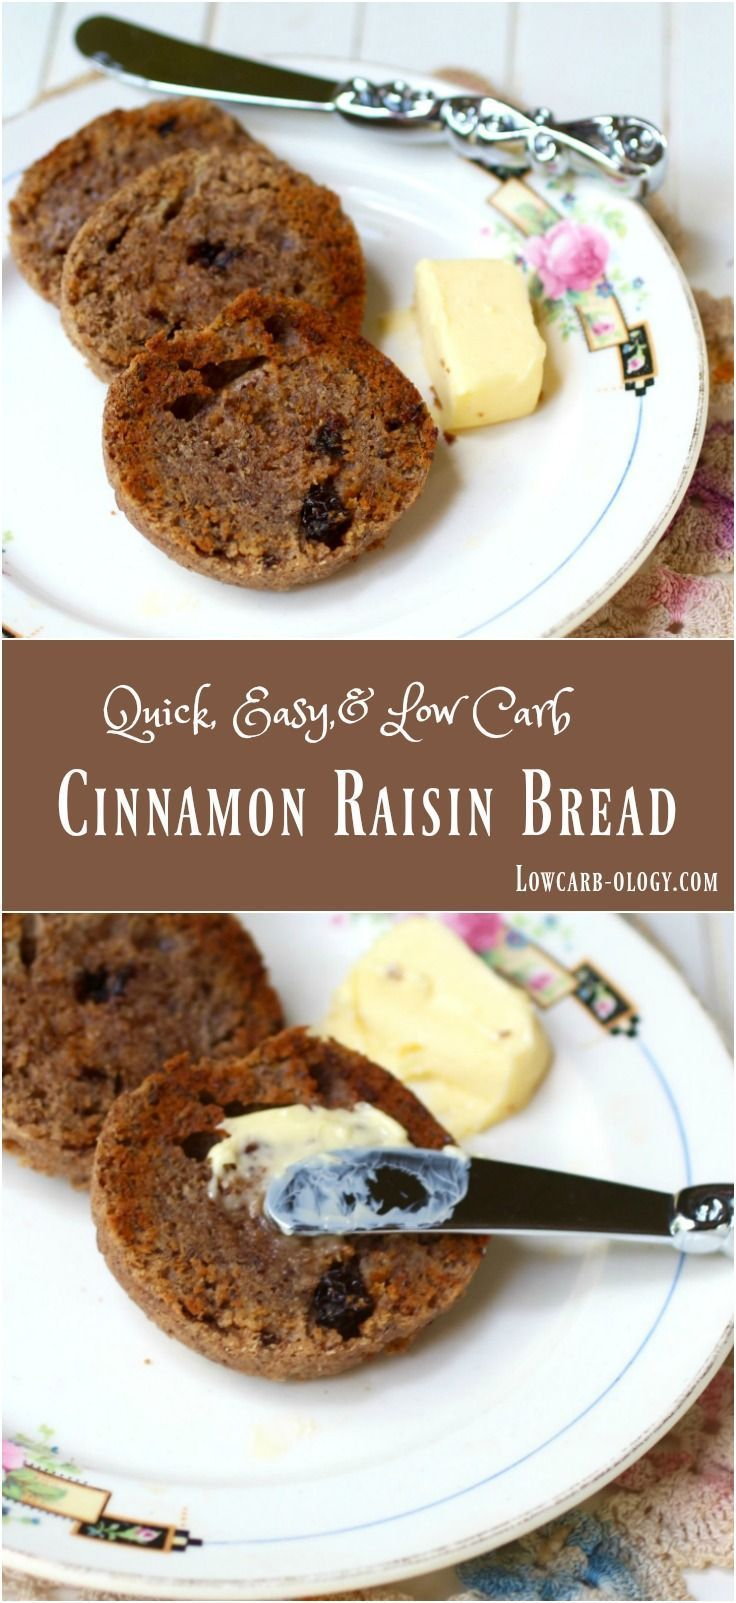 This low carb cinnamon bread with raisins has just 4 3 net